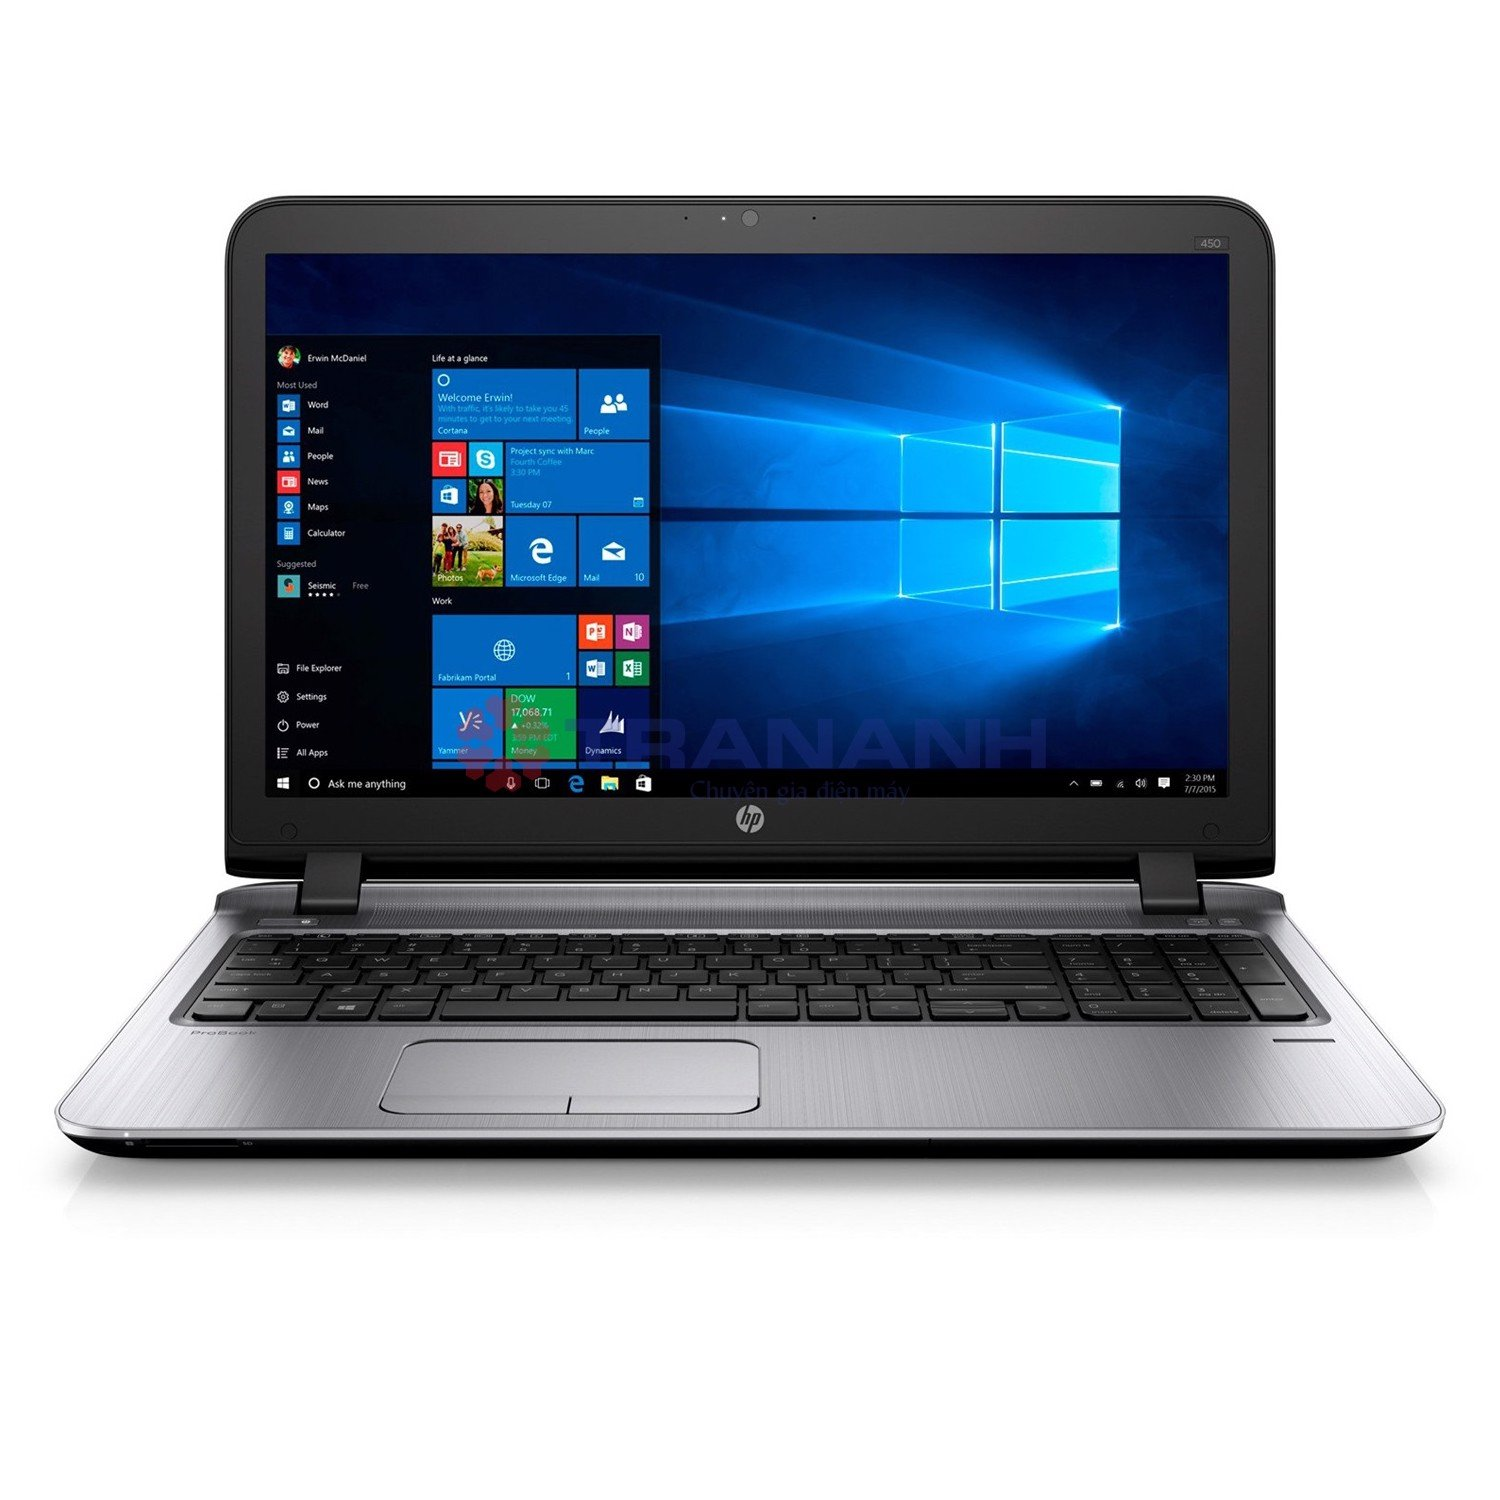 HP EliteBook 840 G2 Core i5/RAM 4GB/ SSD 128GB